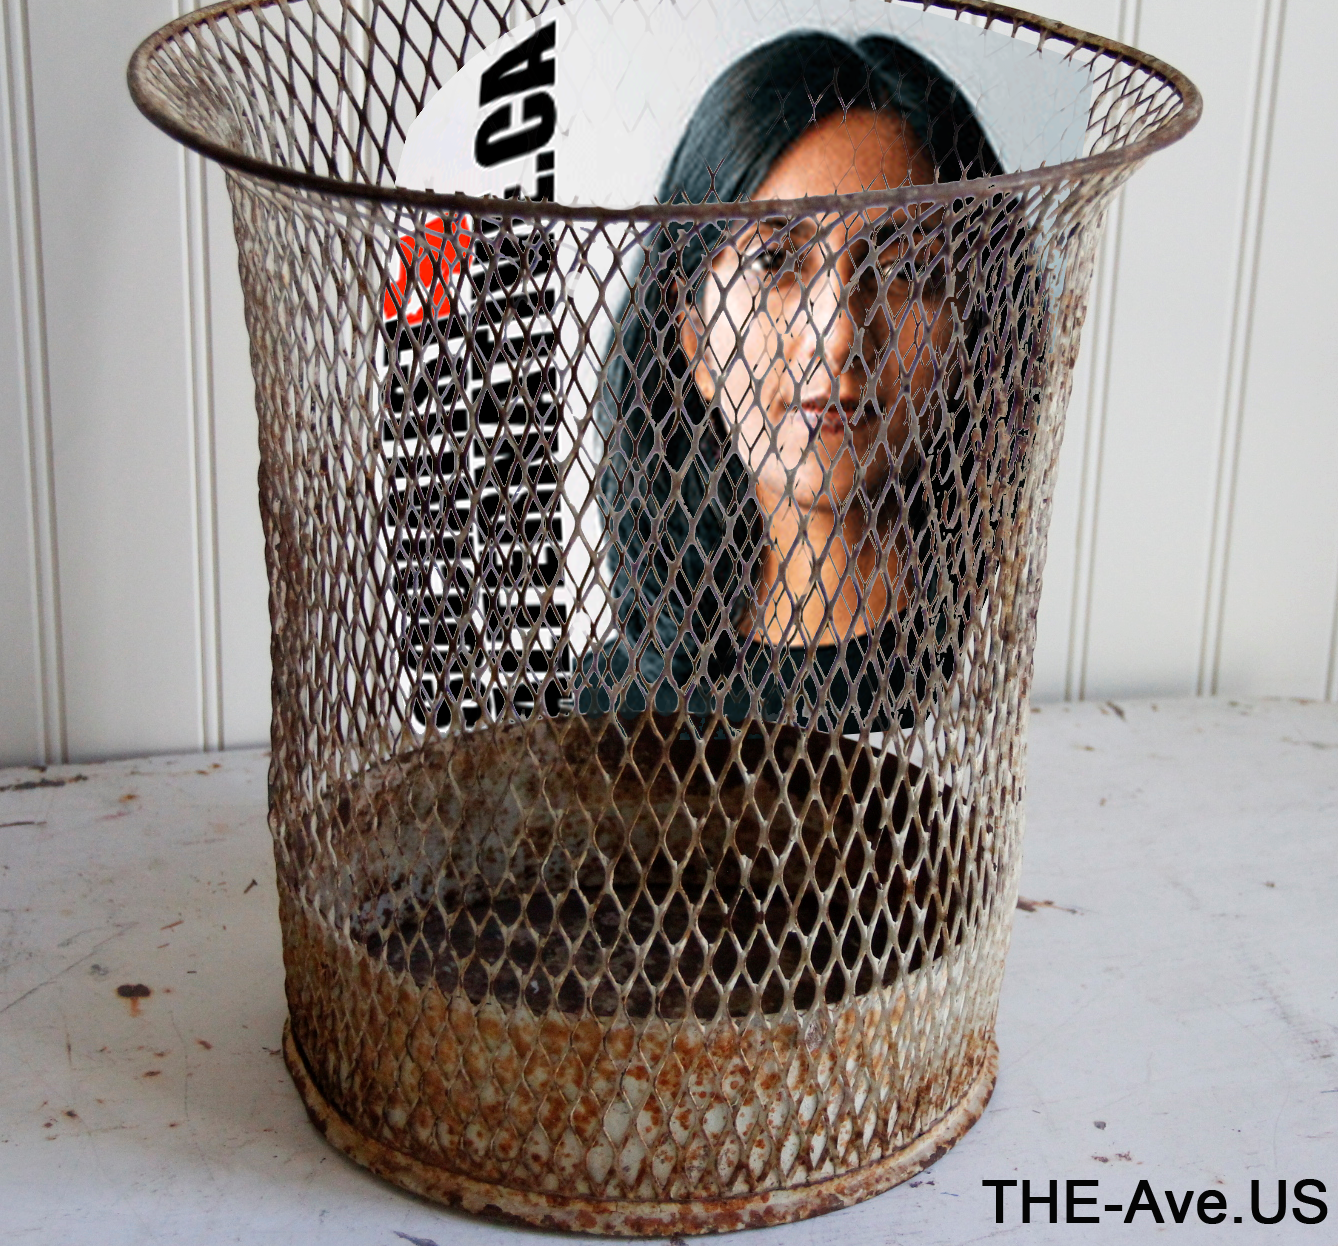 This post form FACEBOOK is scary.  What part of Seattle min in New Yor? Sawant has so far not even apepared in her own District much less raised any of the questions specific to District 3.  Seems as if she is running for something else?  Sales of her autobiography?